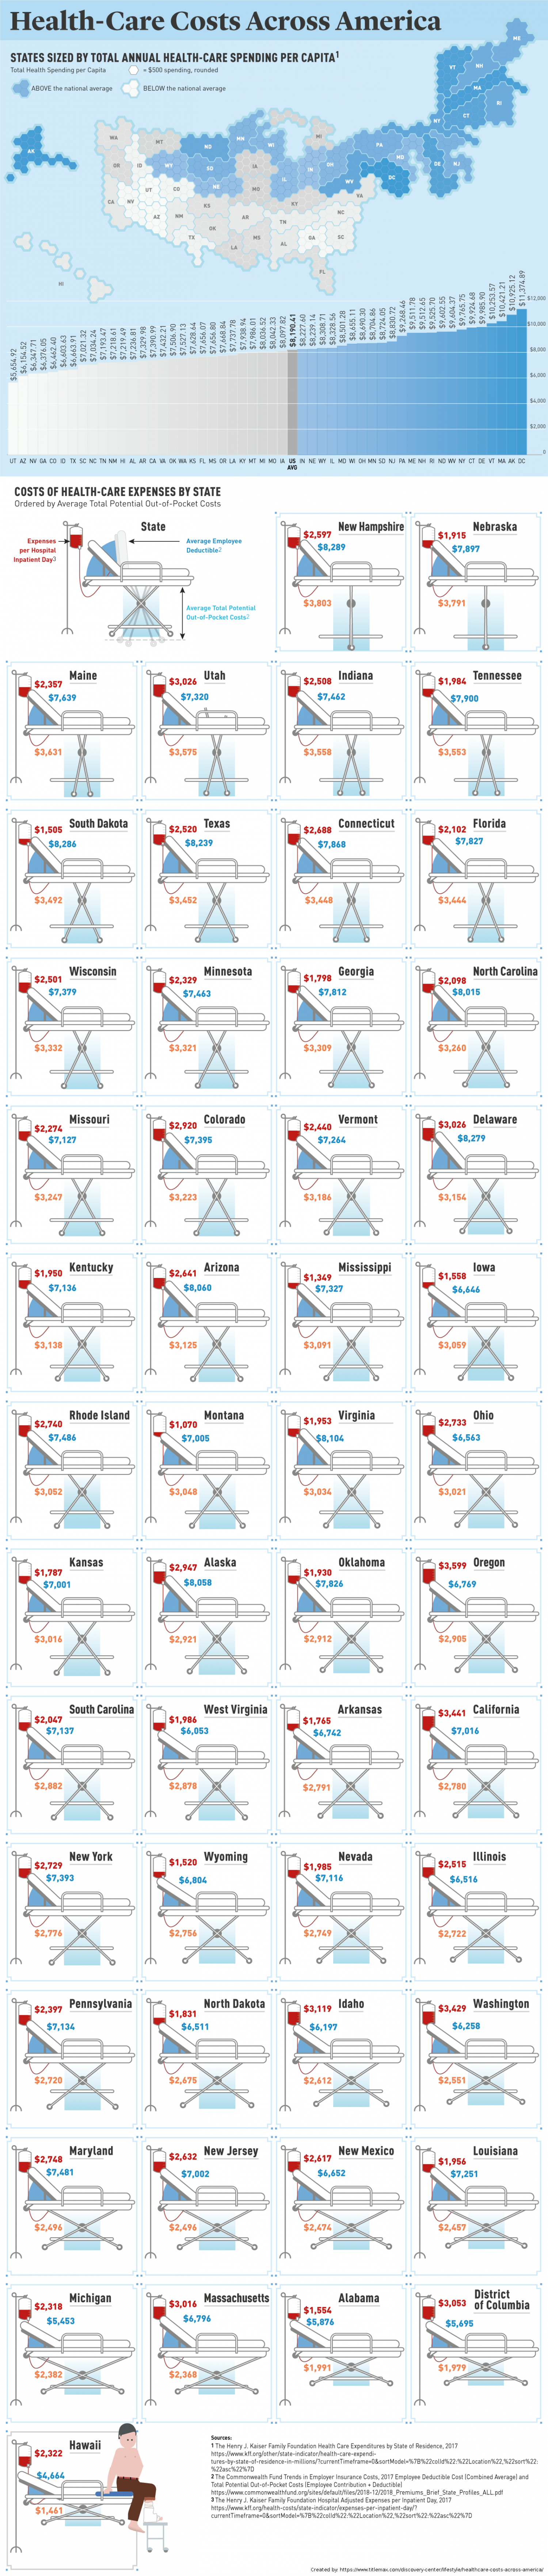 Health Care Costs, By State Infographic